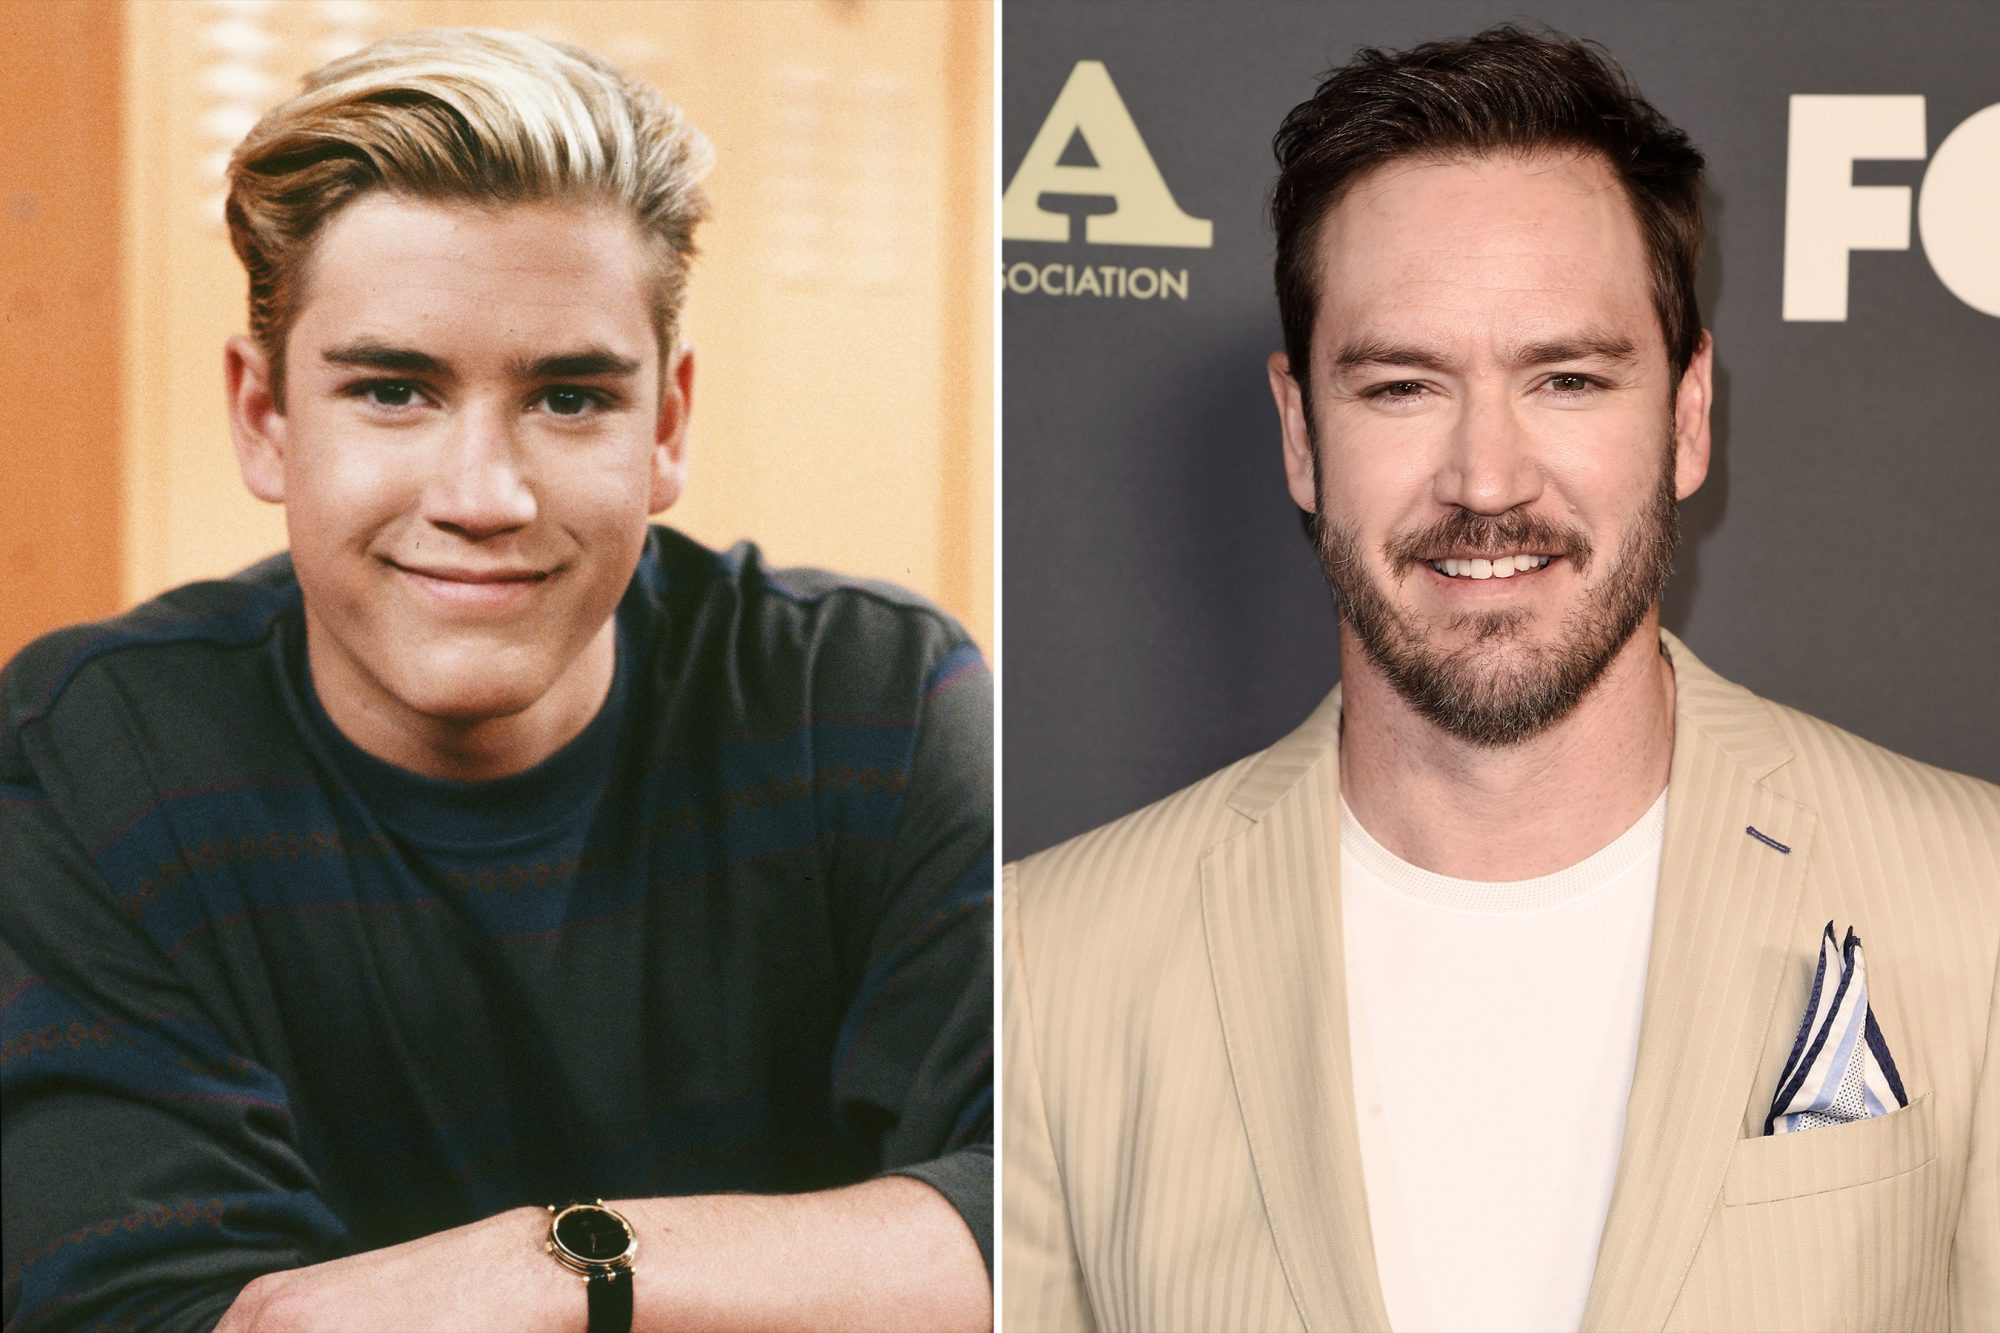 Actor Mark-Paul Gosselaar from Saved by the Bell Then and Now